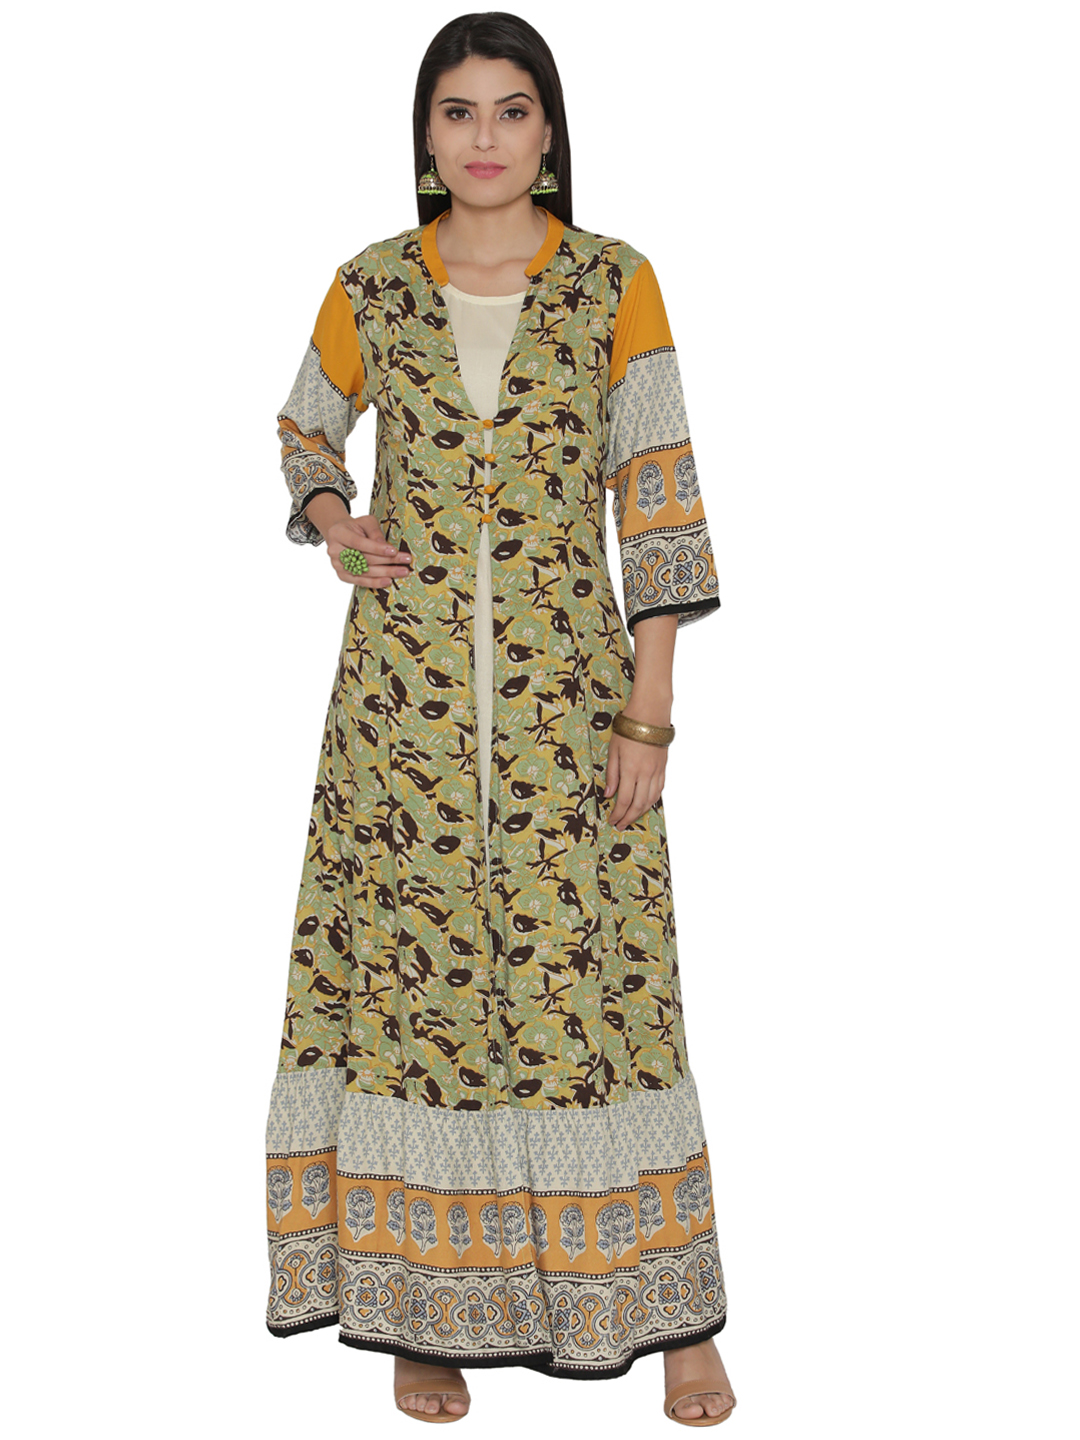 Shree Women Olive Green & Mustard Yellow Floral Print Maxi Dress Price in India